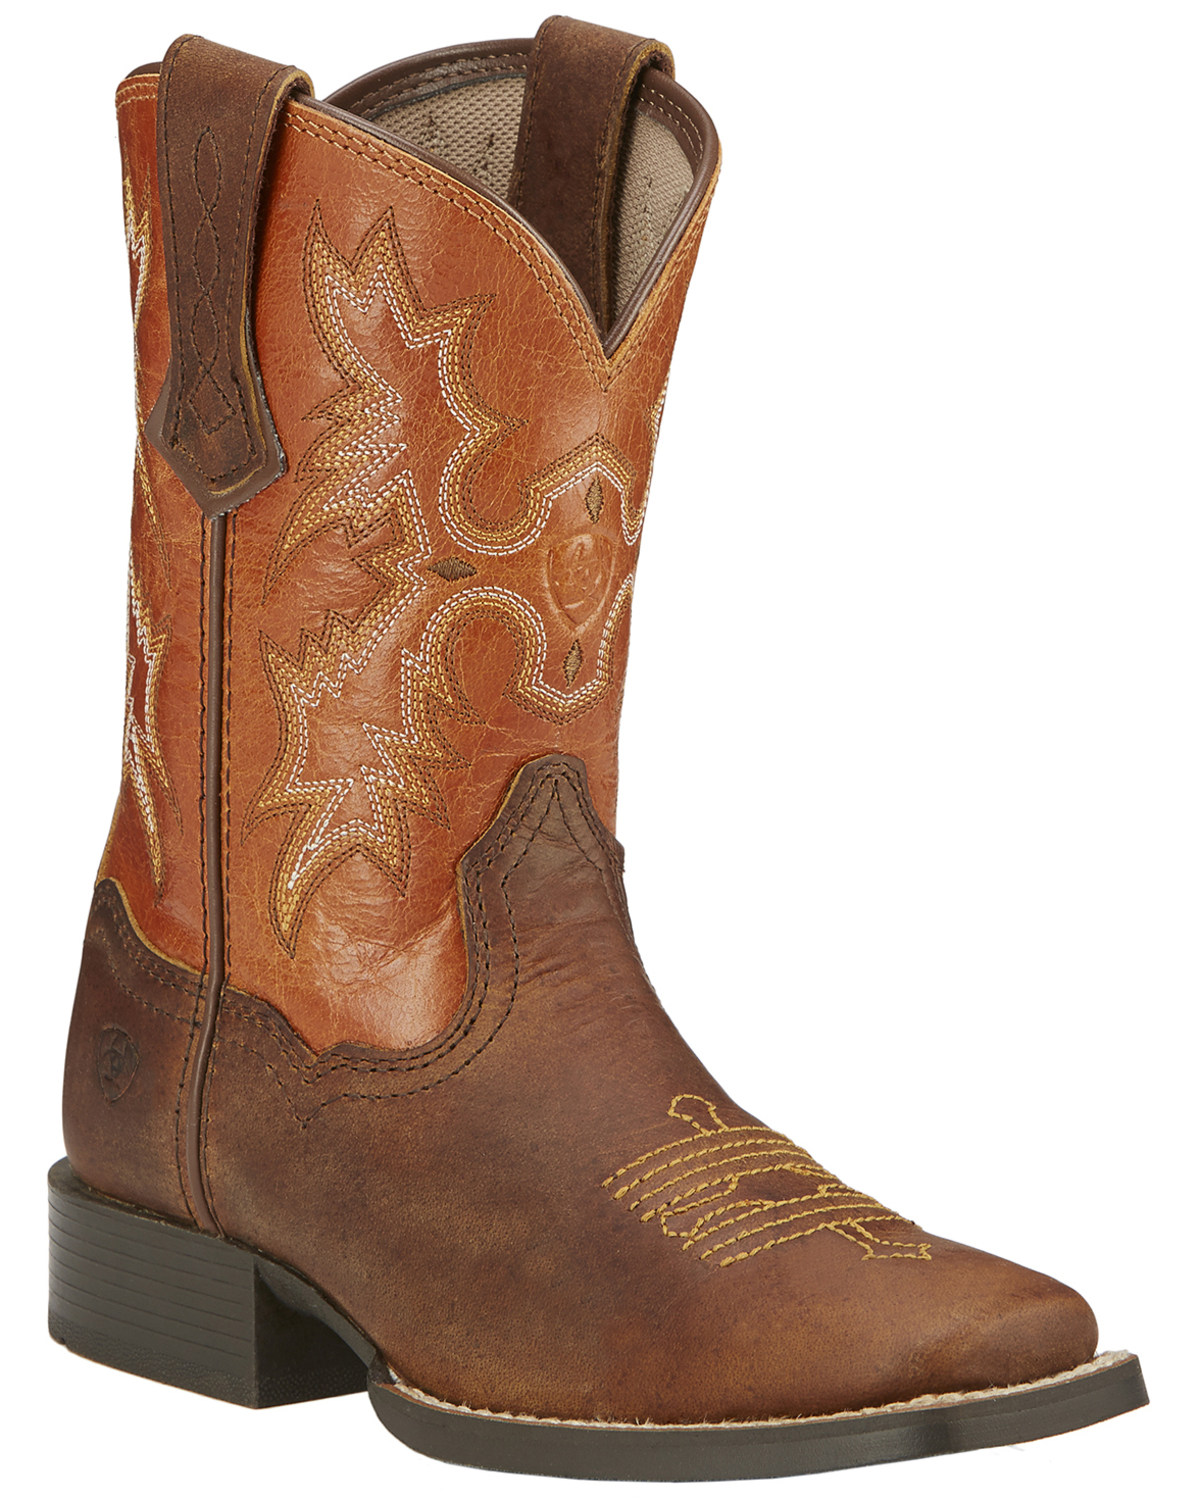 744b7fe9f01 Ariat Kid's Tombstone Square Toe Western Boots